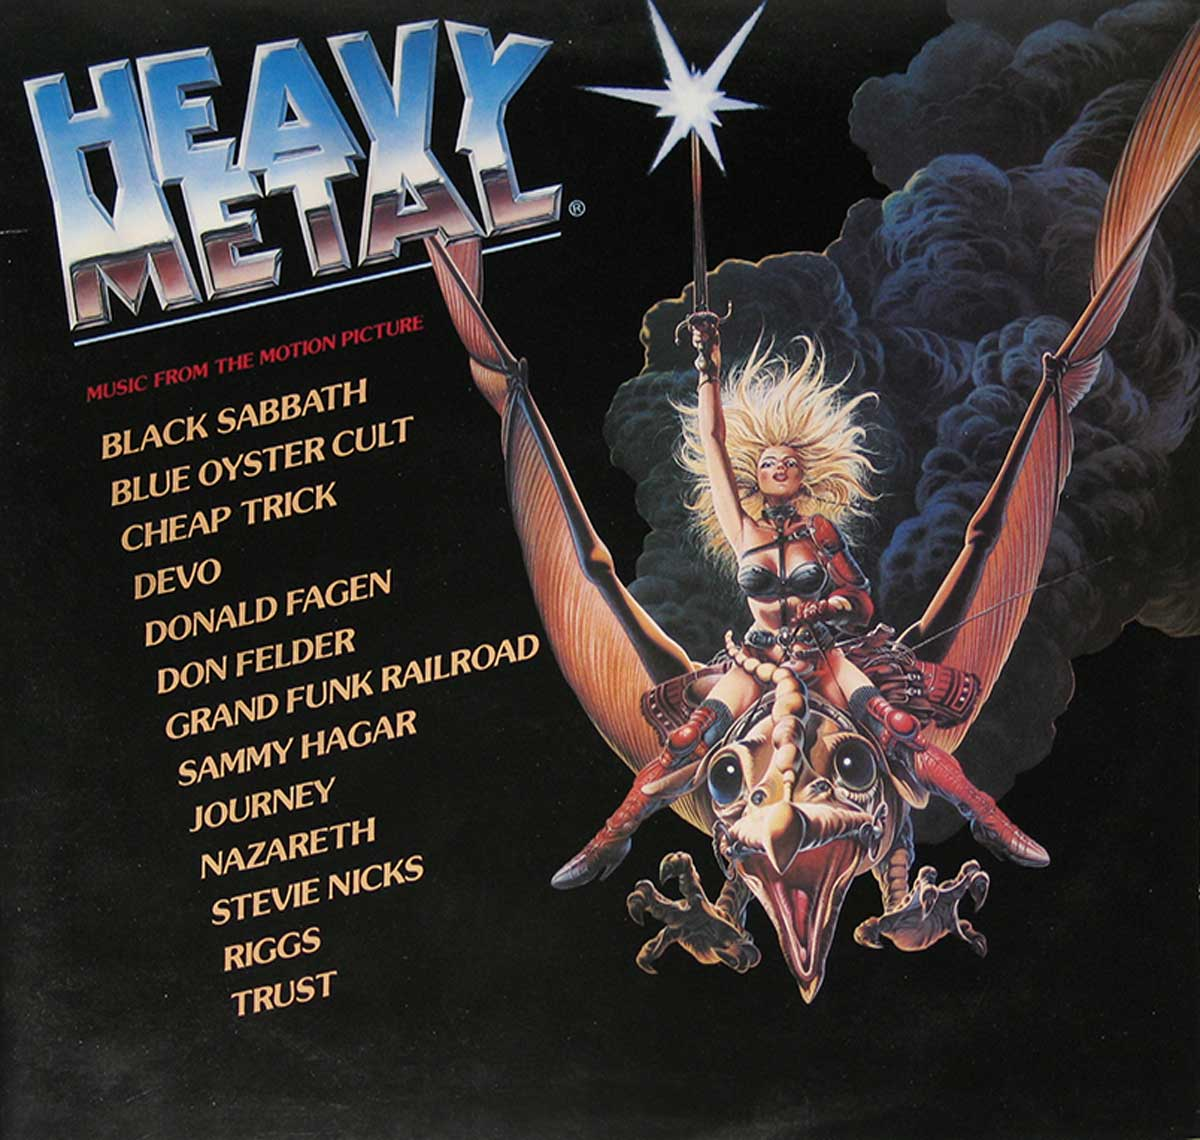 large photo of the album front cover of: HEAVY METAL MUSIC FROM THE MOTION PICTURE